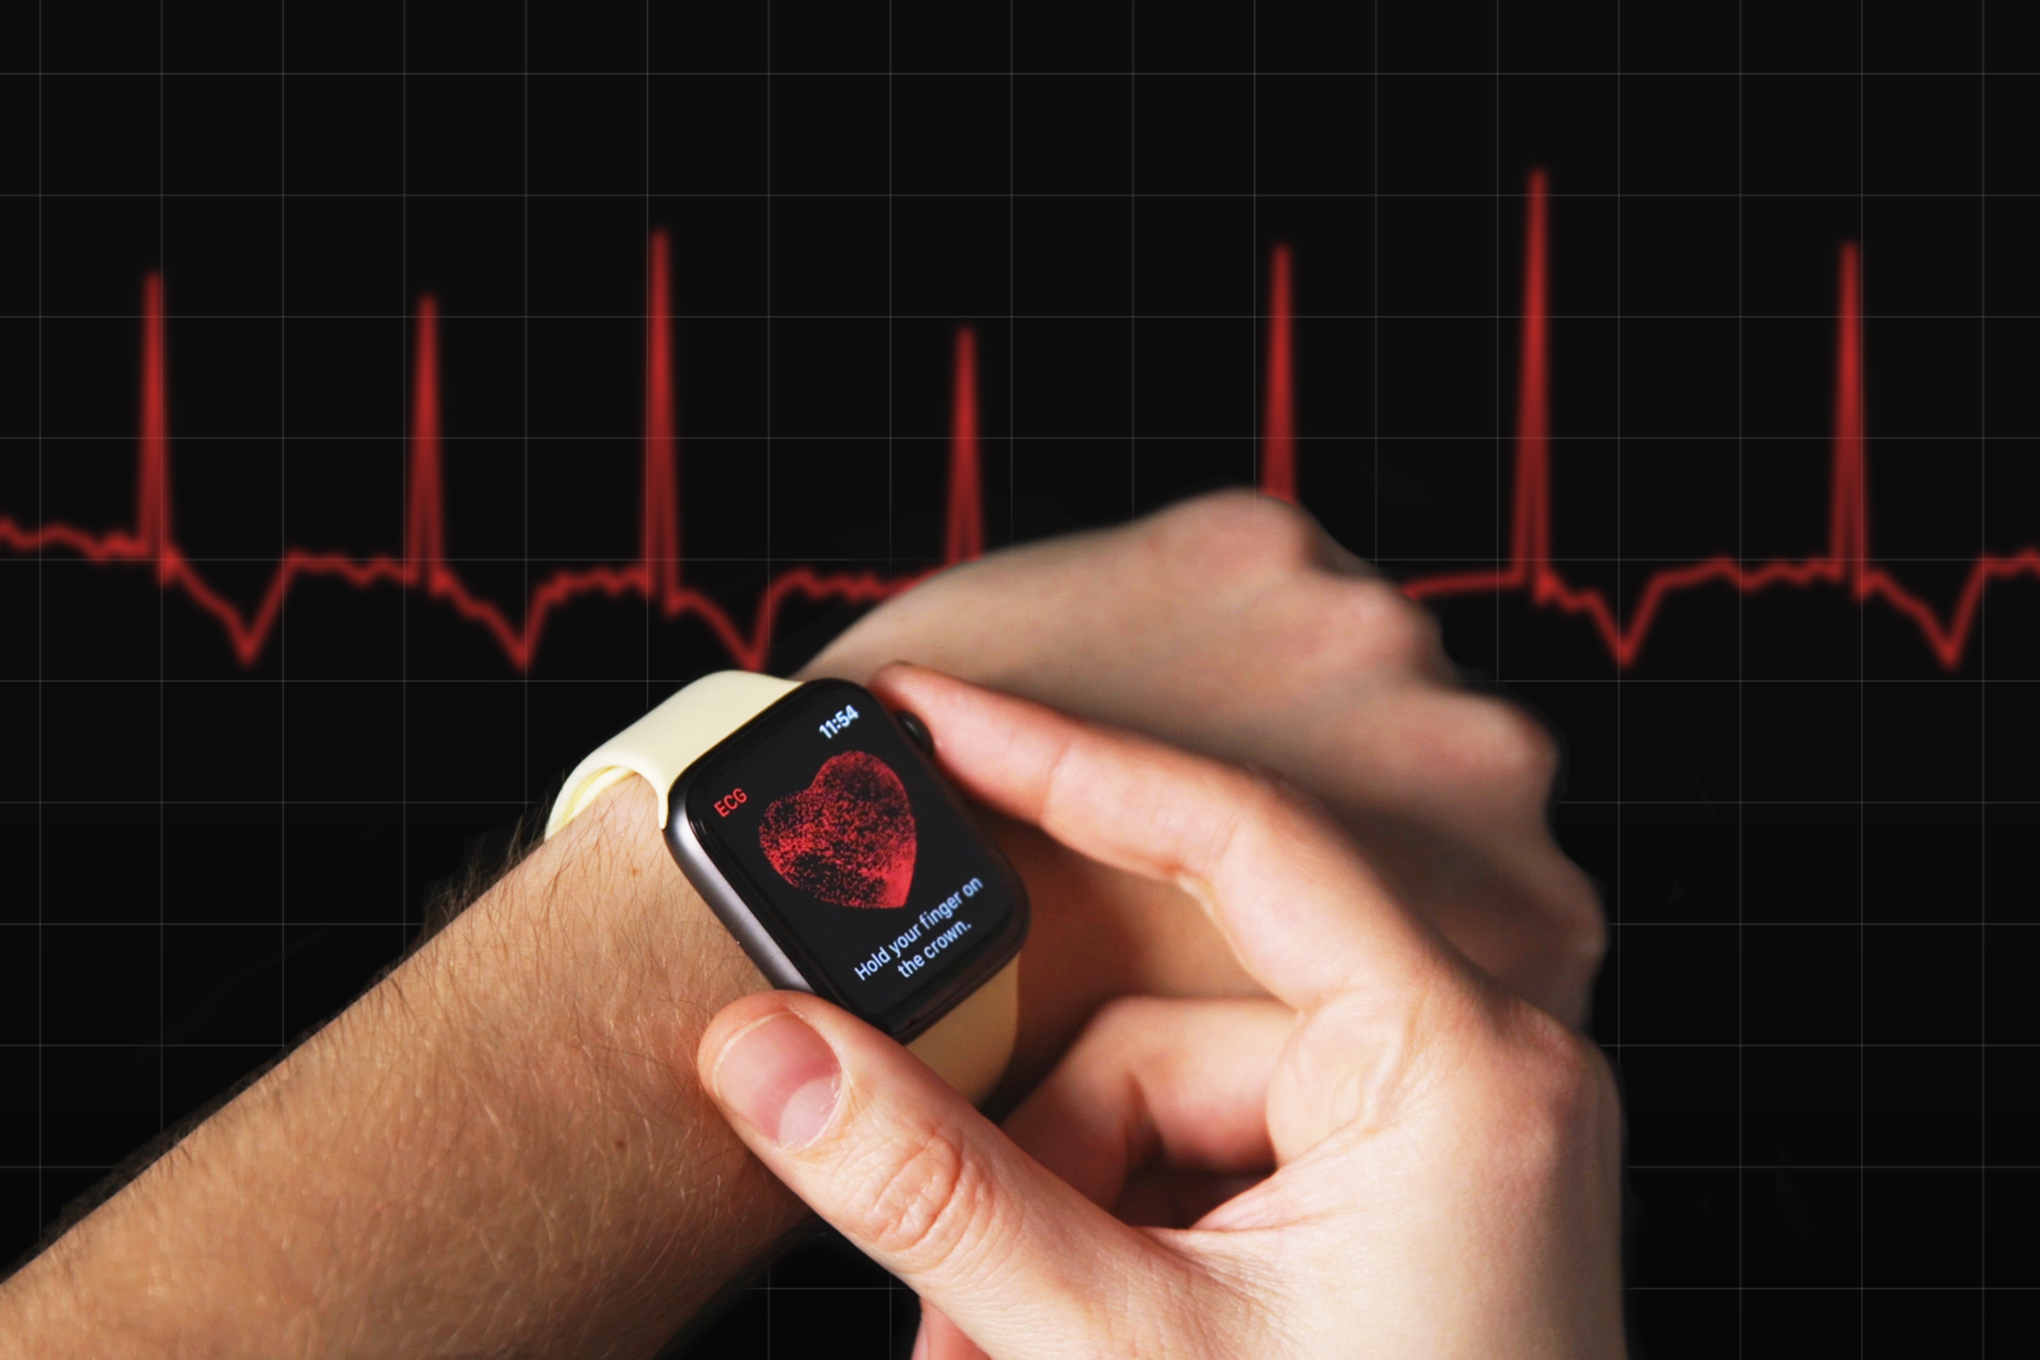 Why doctors are worried about the Apple Watch EKG - The Verge